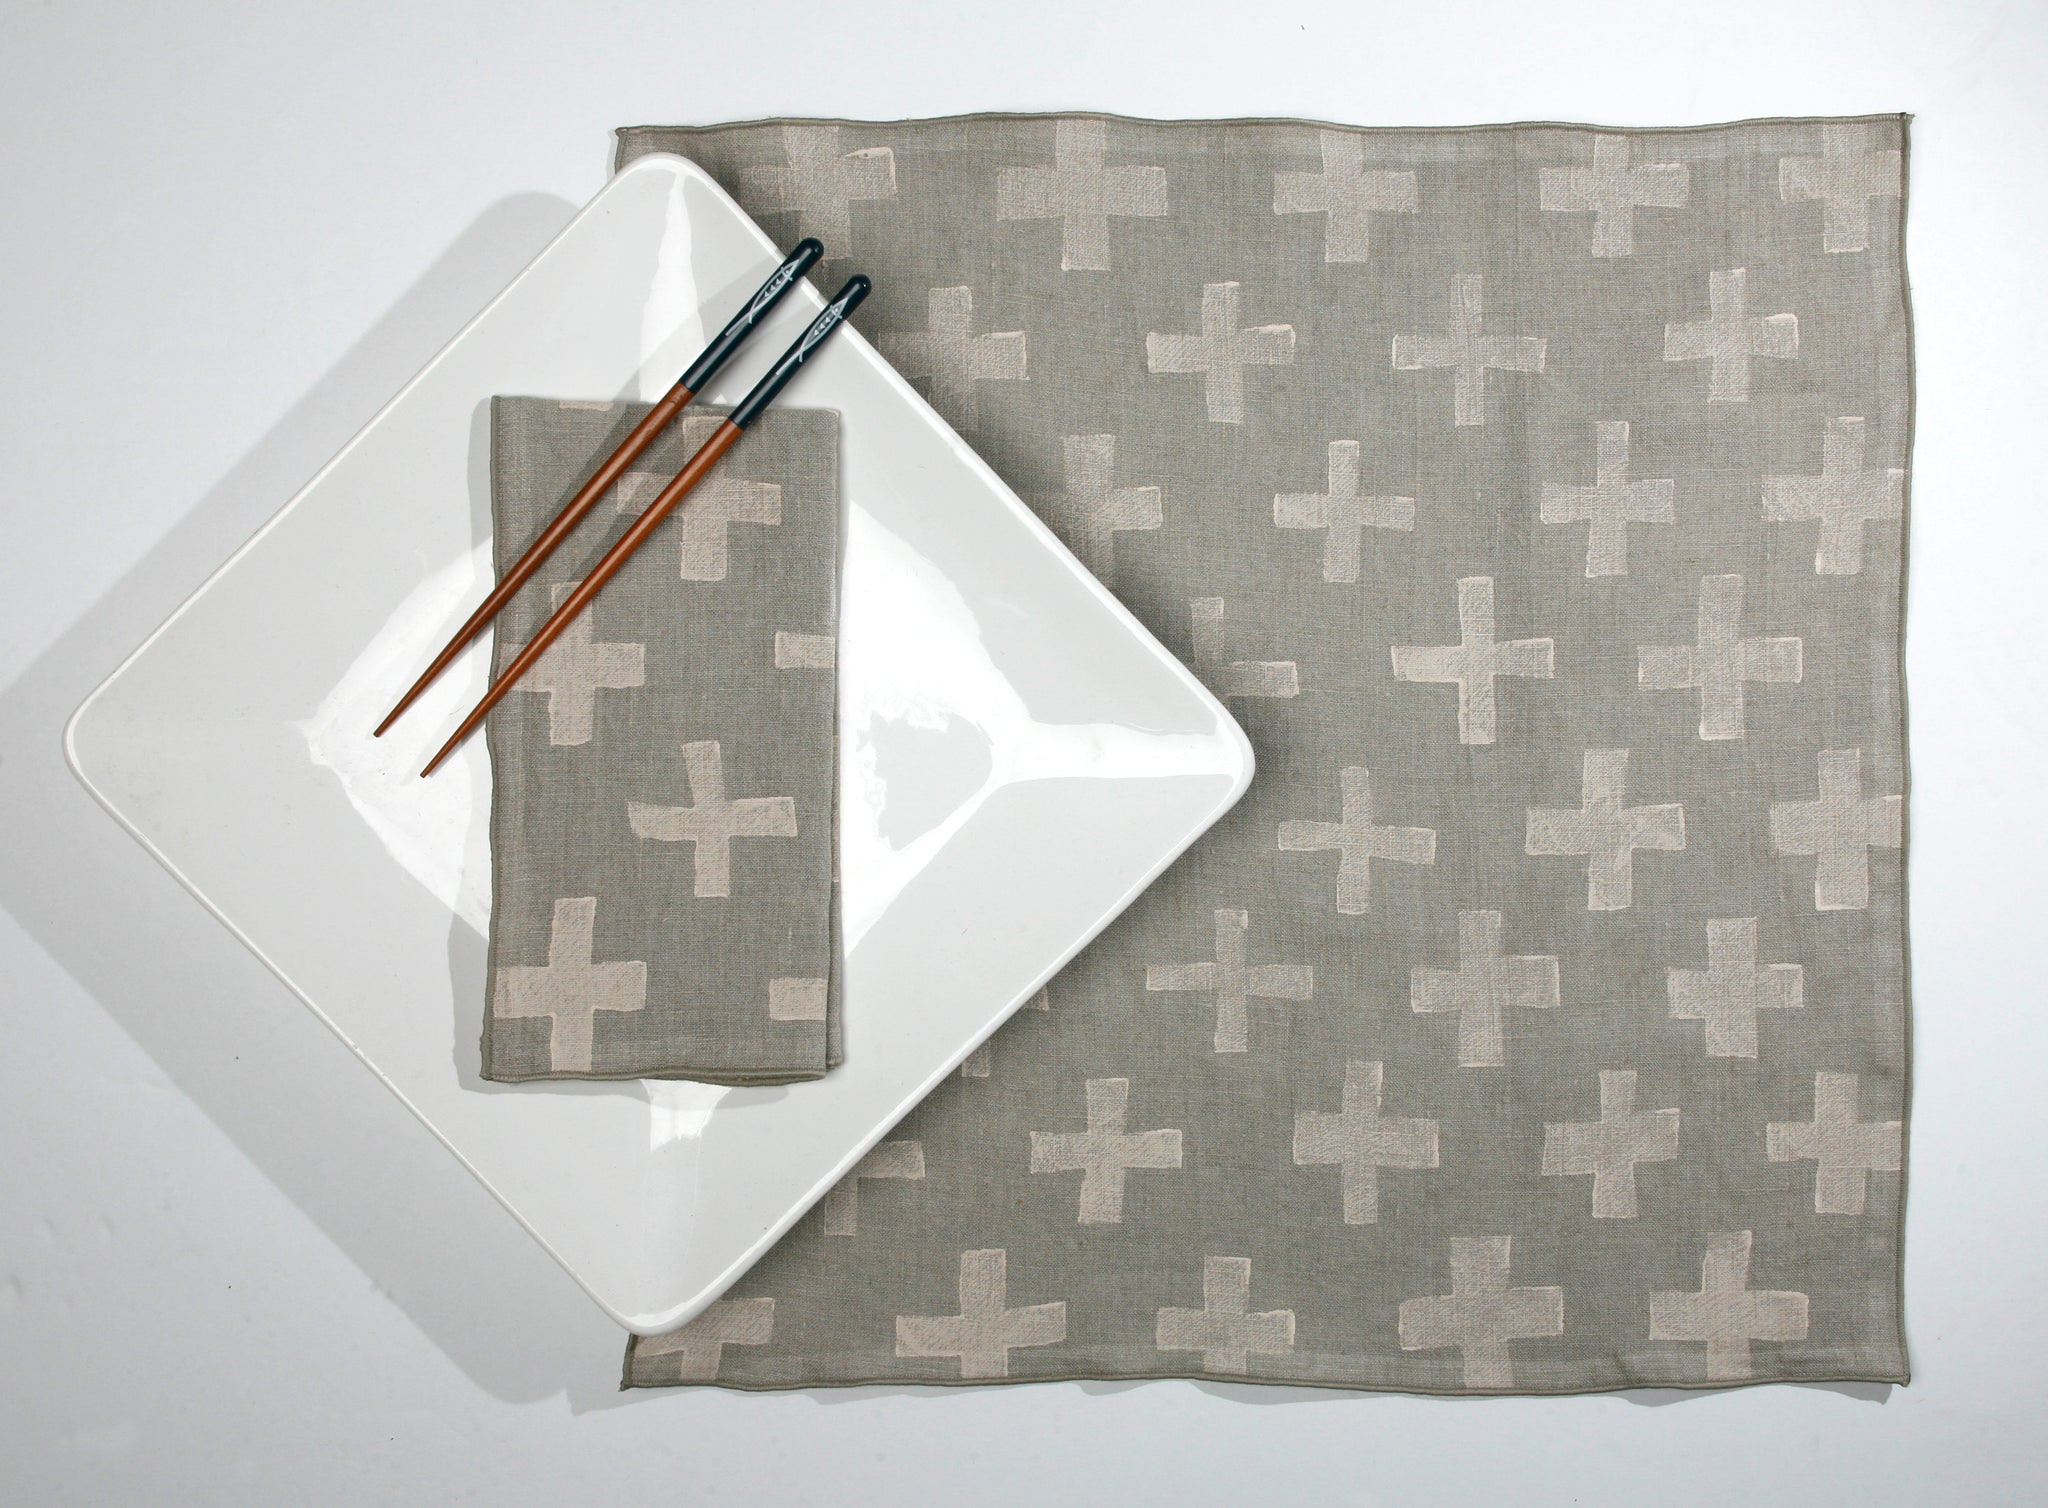 'Plus' Block Printed Linen Dinner Napkins in Cream colorway